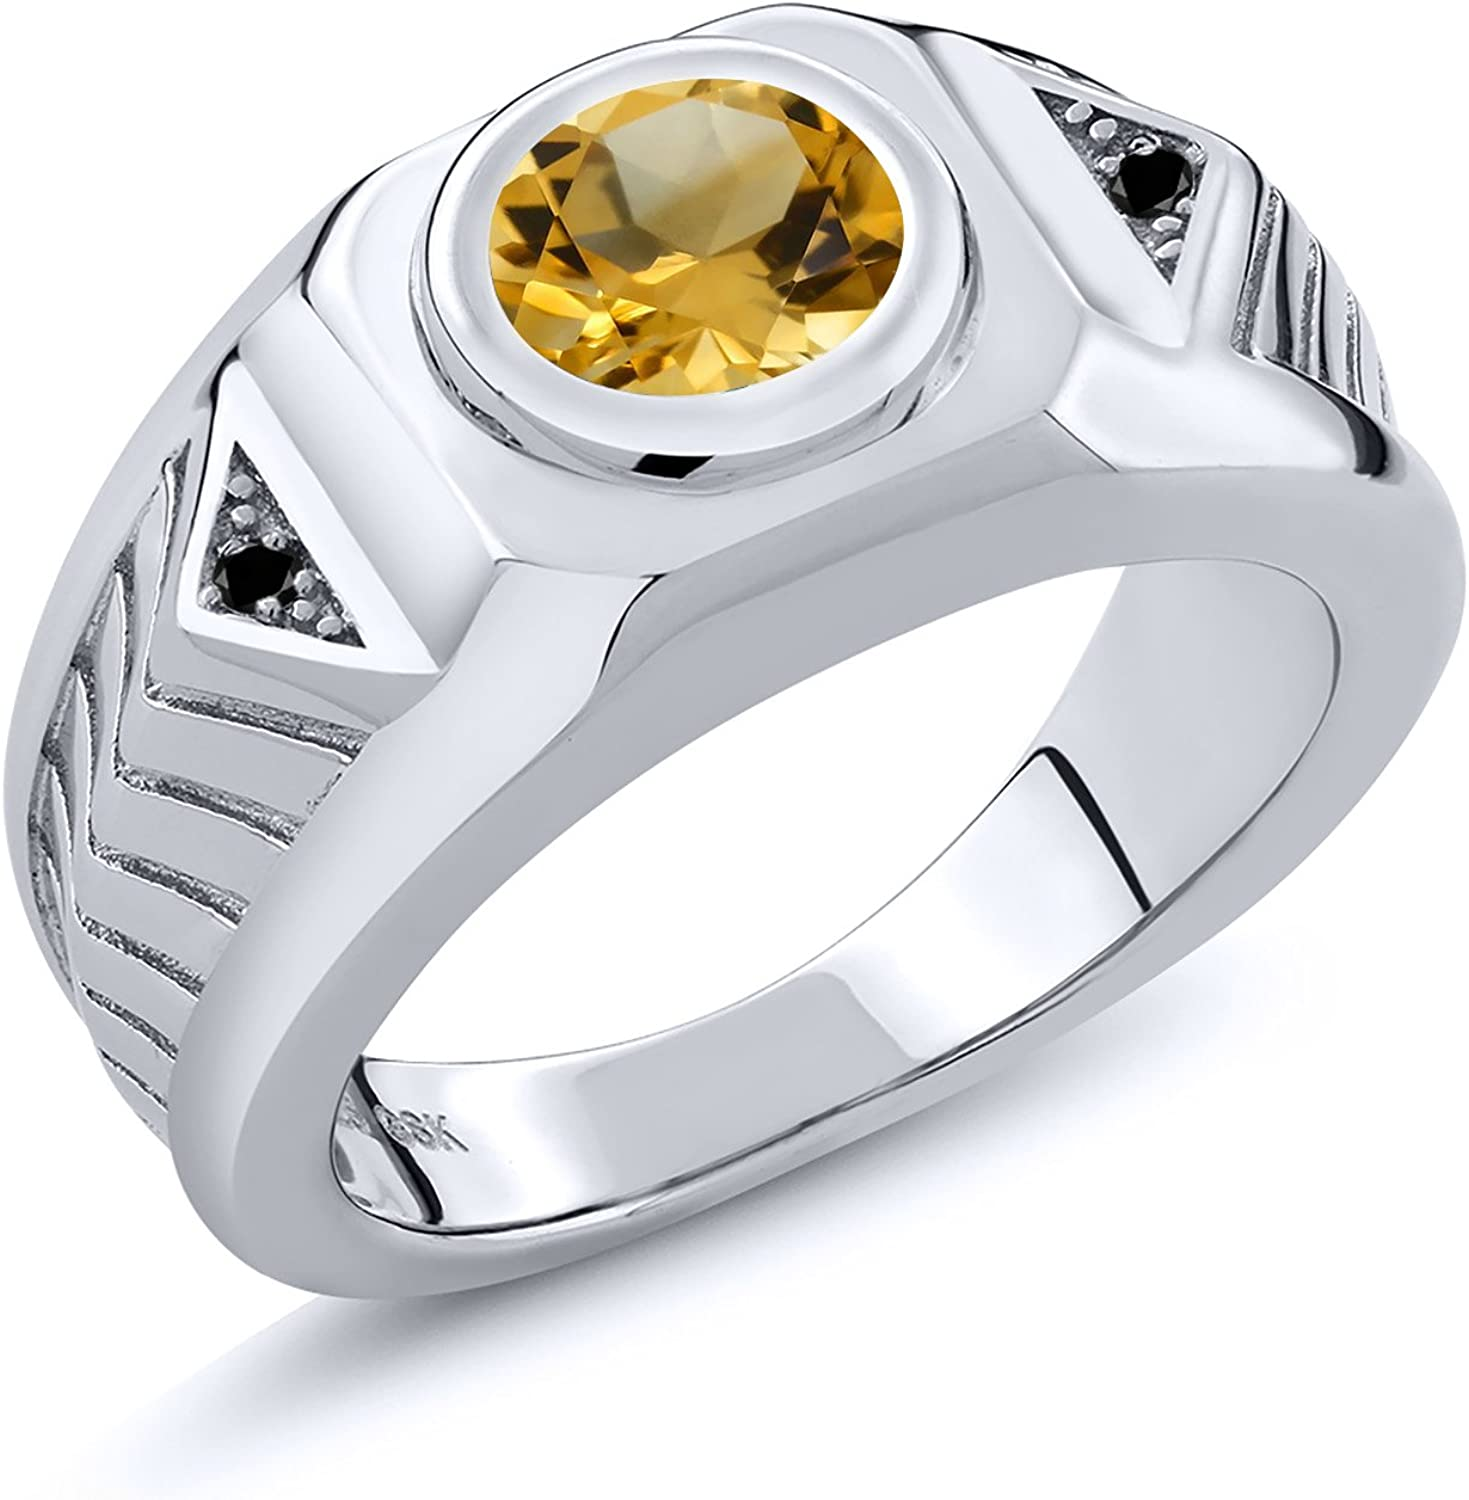 Gem Stone King 925 Sterling Silver Yellow Citrine and Black Diamond Men's Ring (1.53 Cttw Round, Available 7,8,9,10,11,12,13)